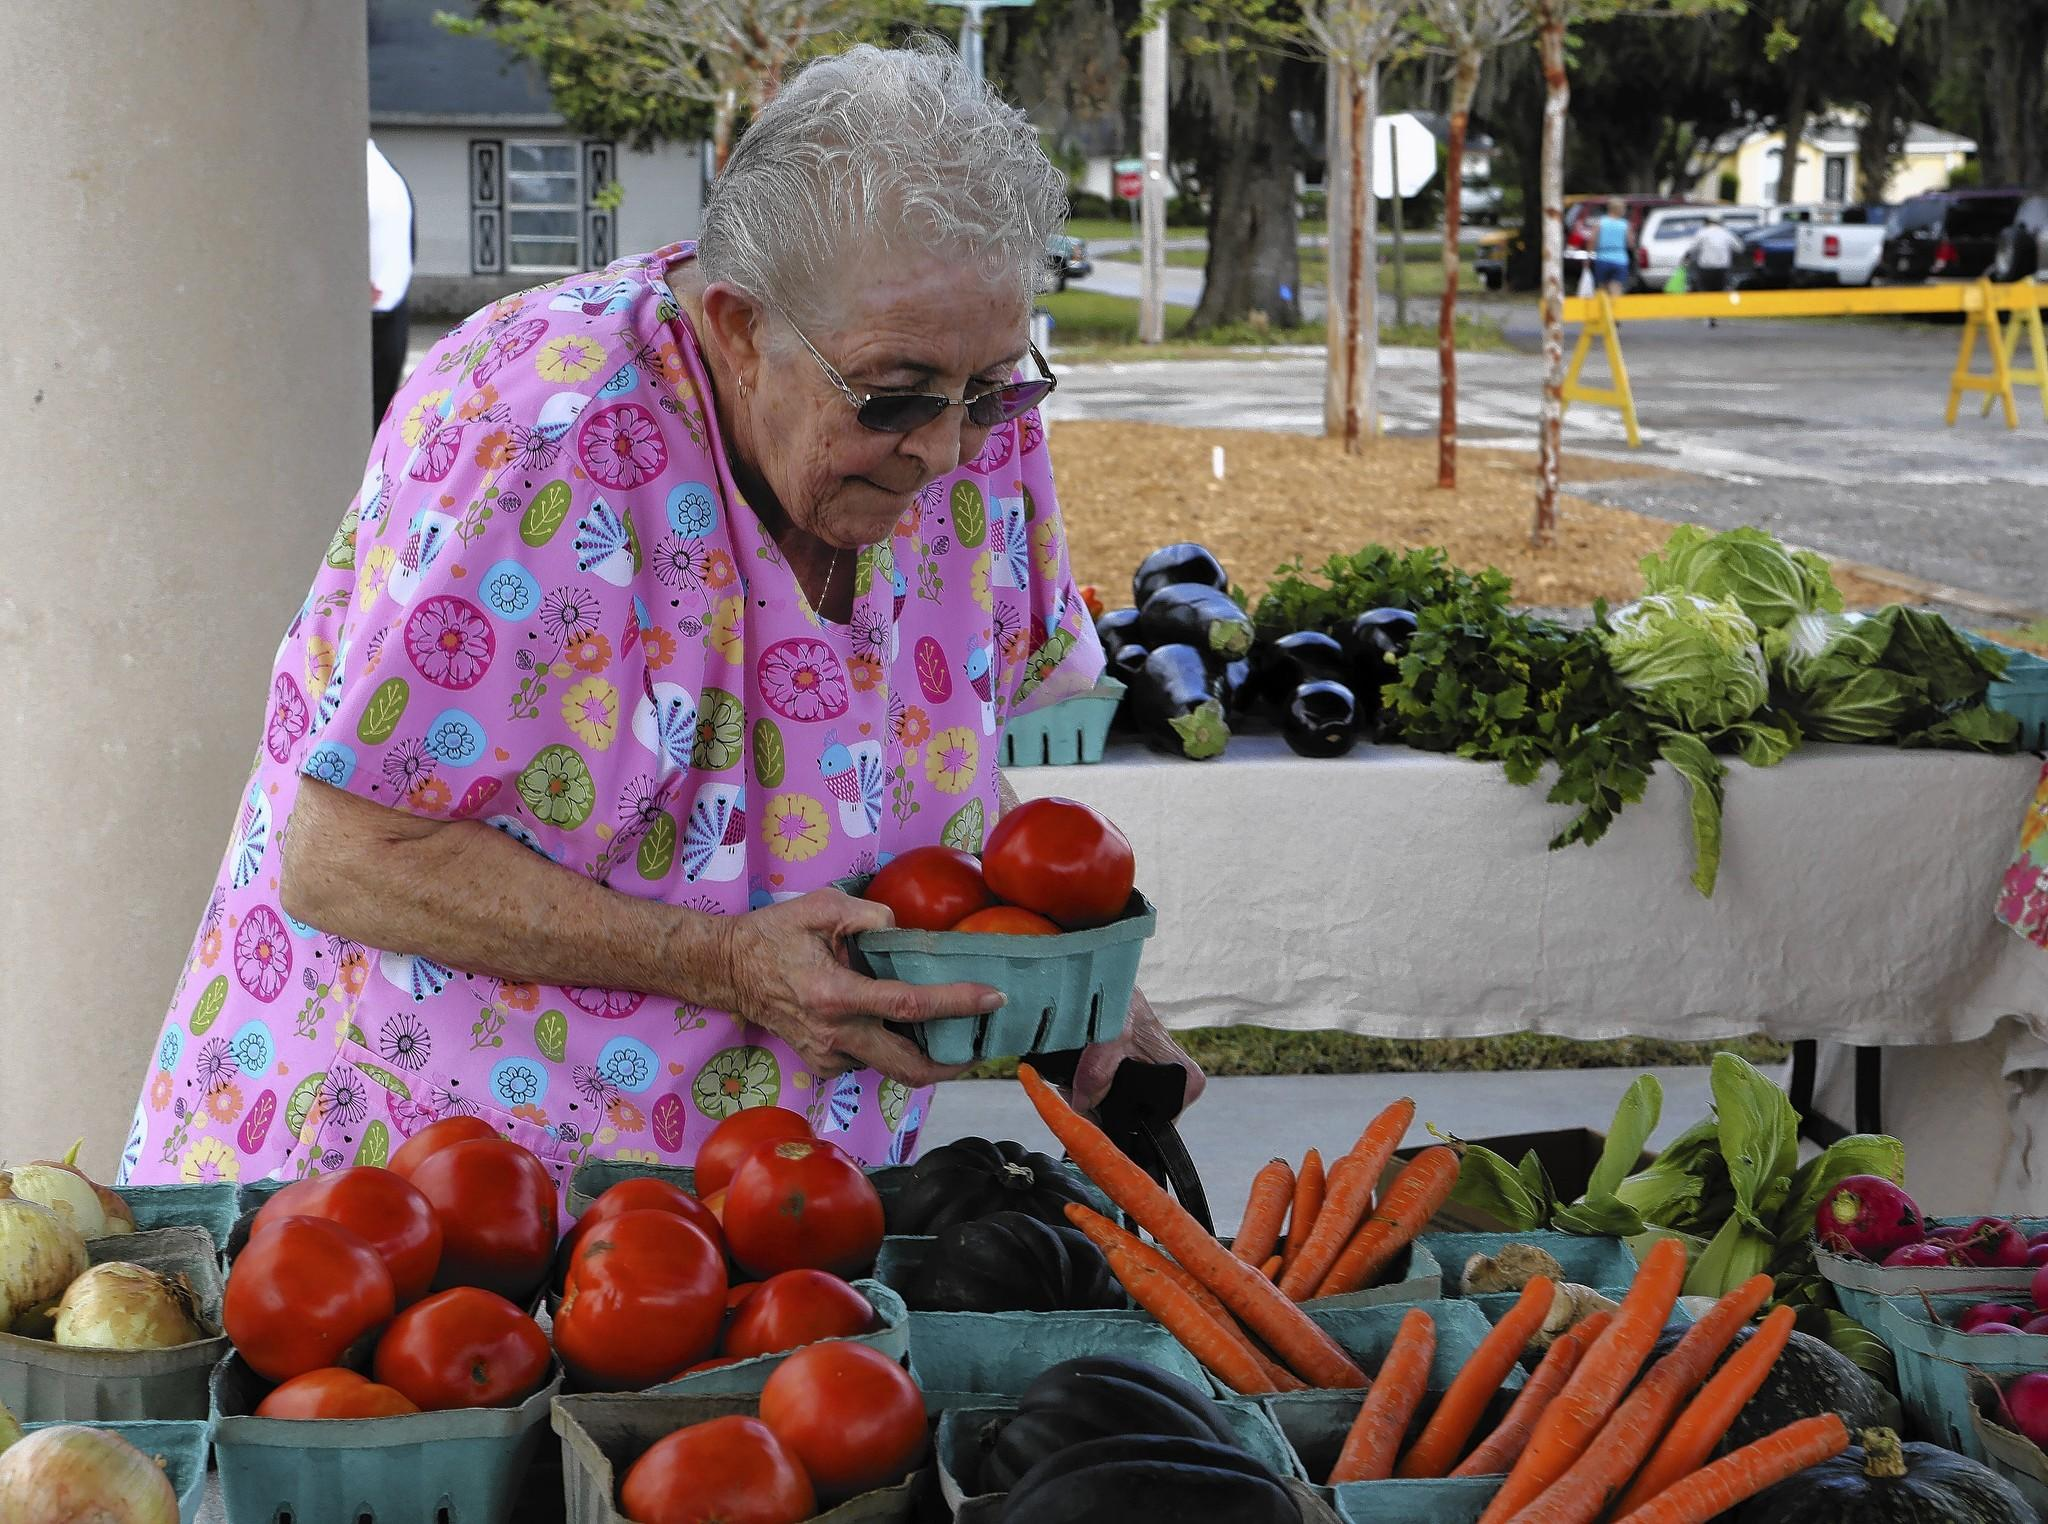 Ruth Verrillya shops for produce at the new open air market at Palmetto Plaza in Eustis on Wednesday, November 6, 2013.